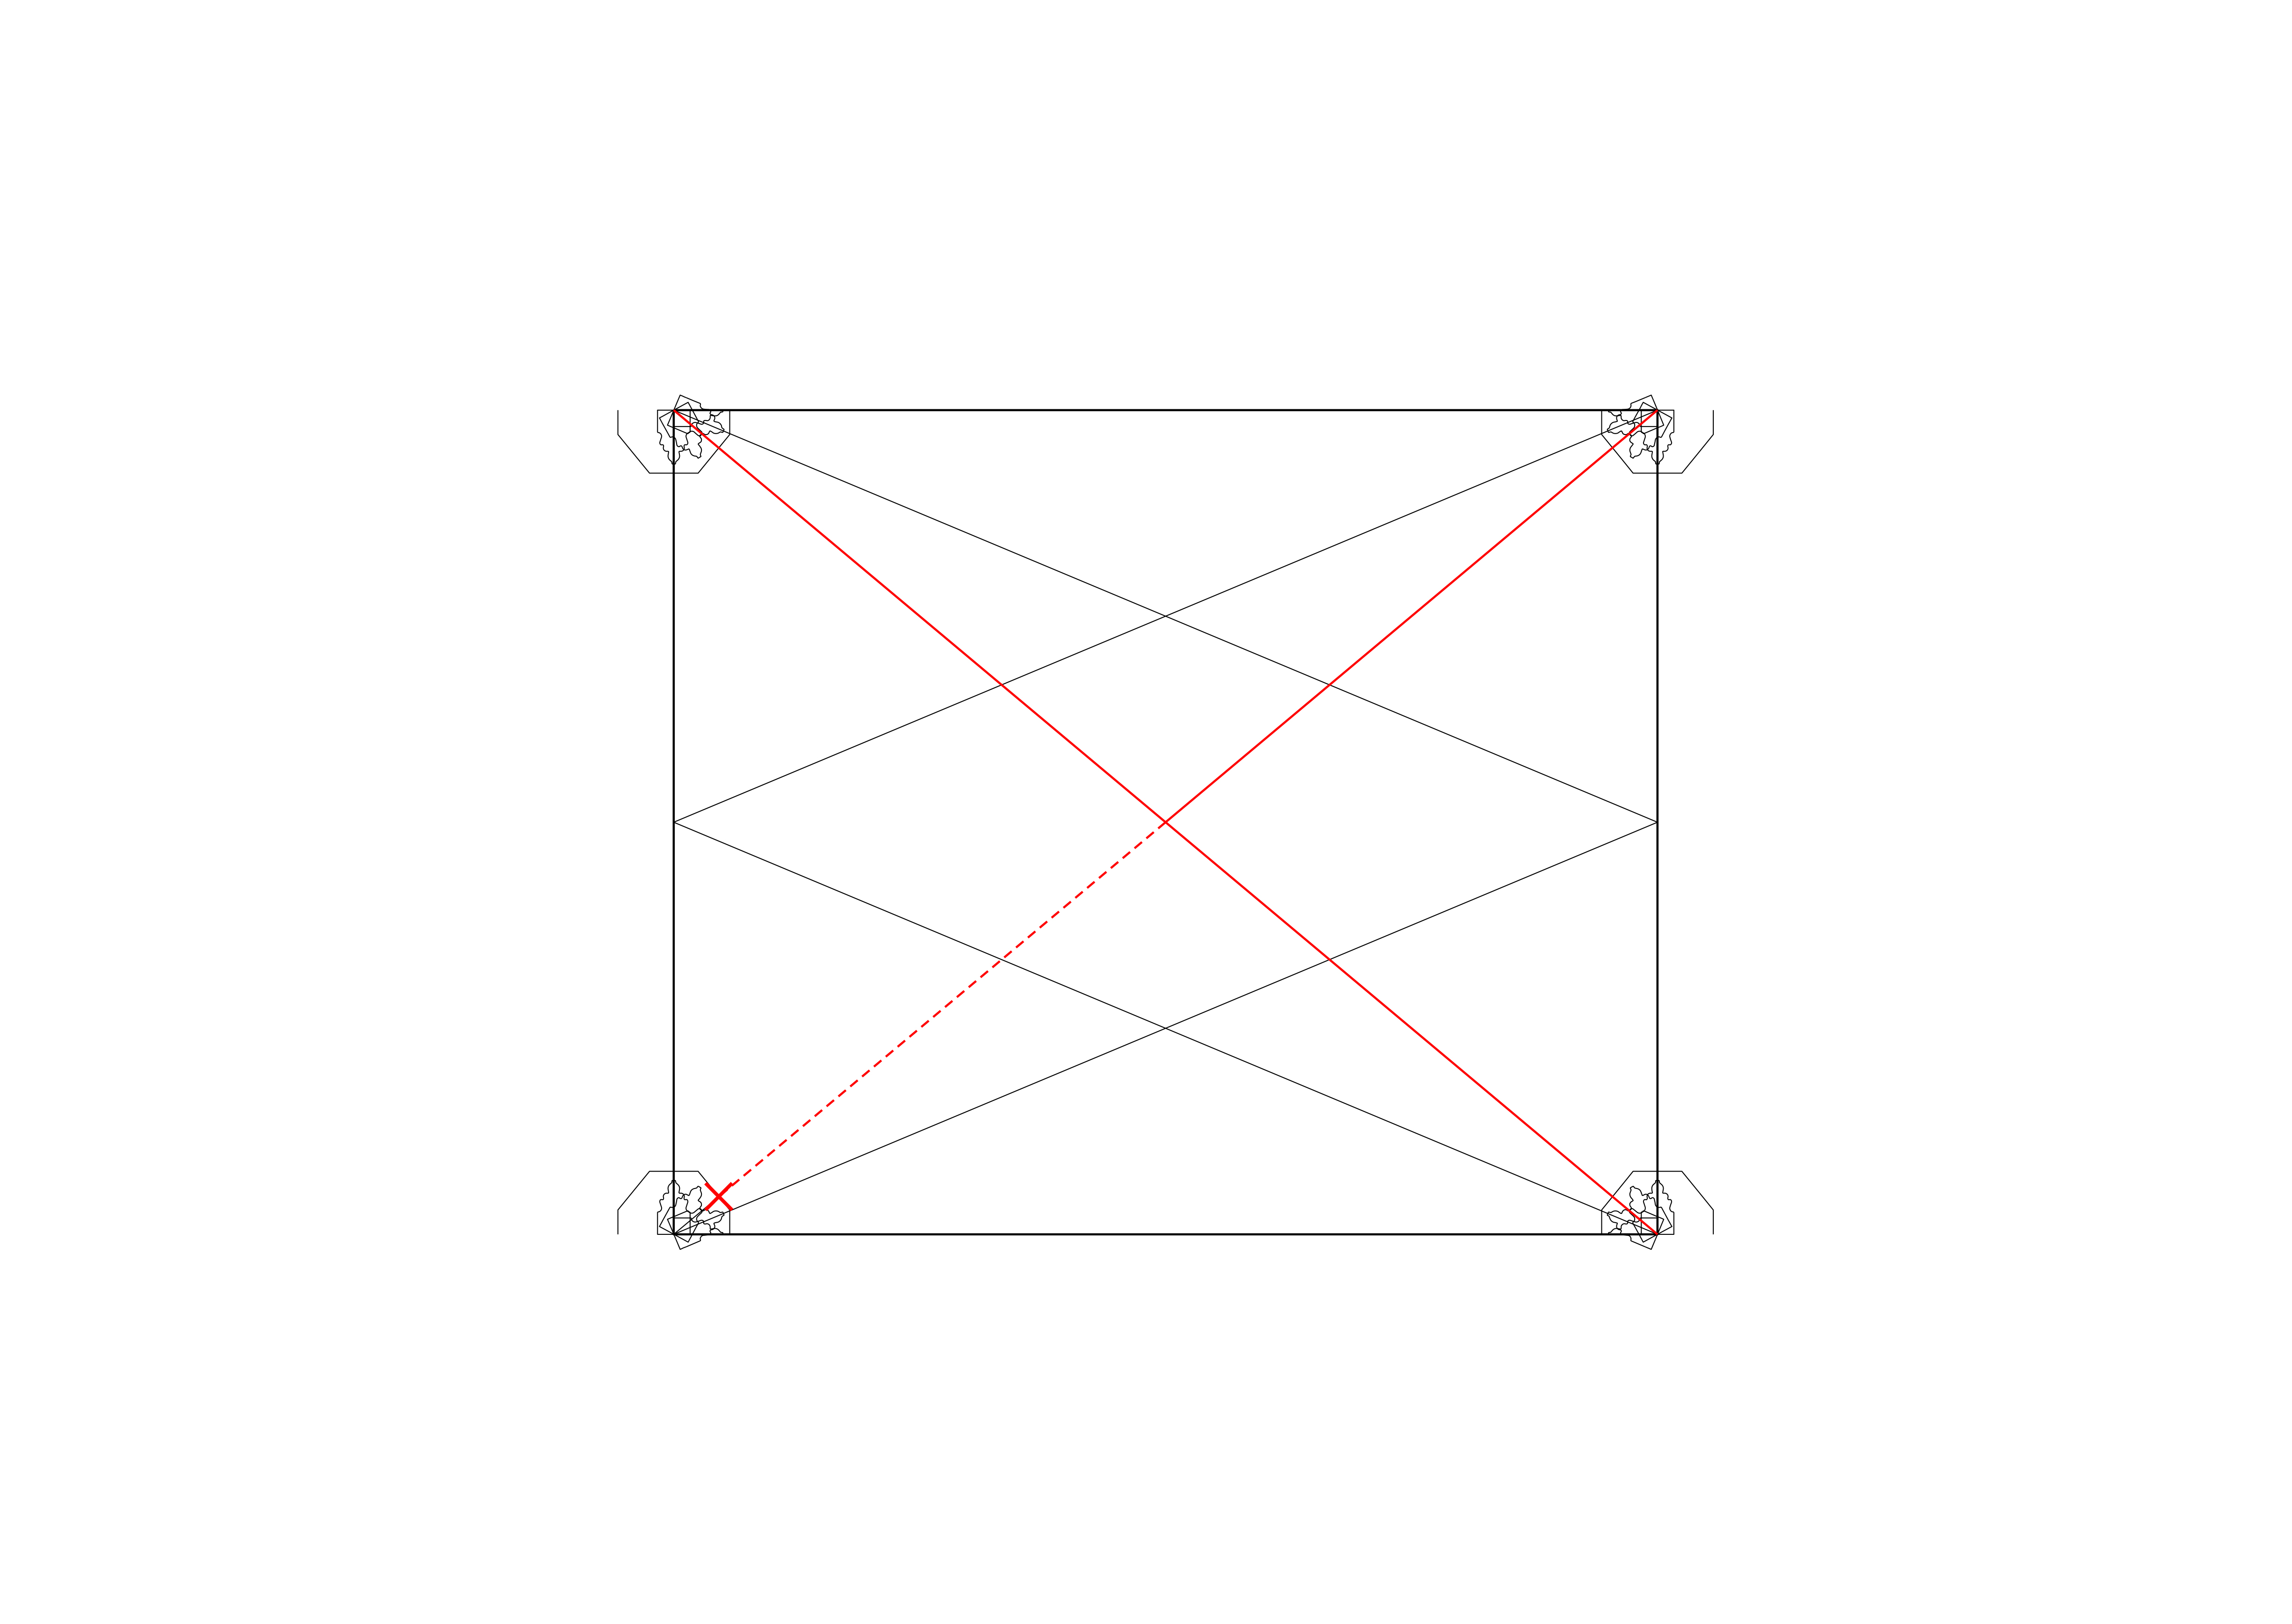 <i>showing addition of diagonals and centre of bay to edge of abacus dimension</i>